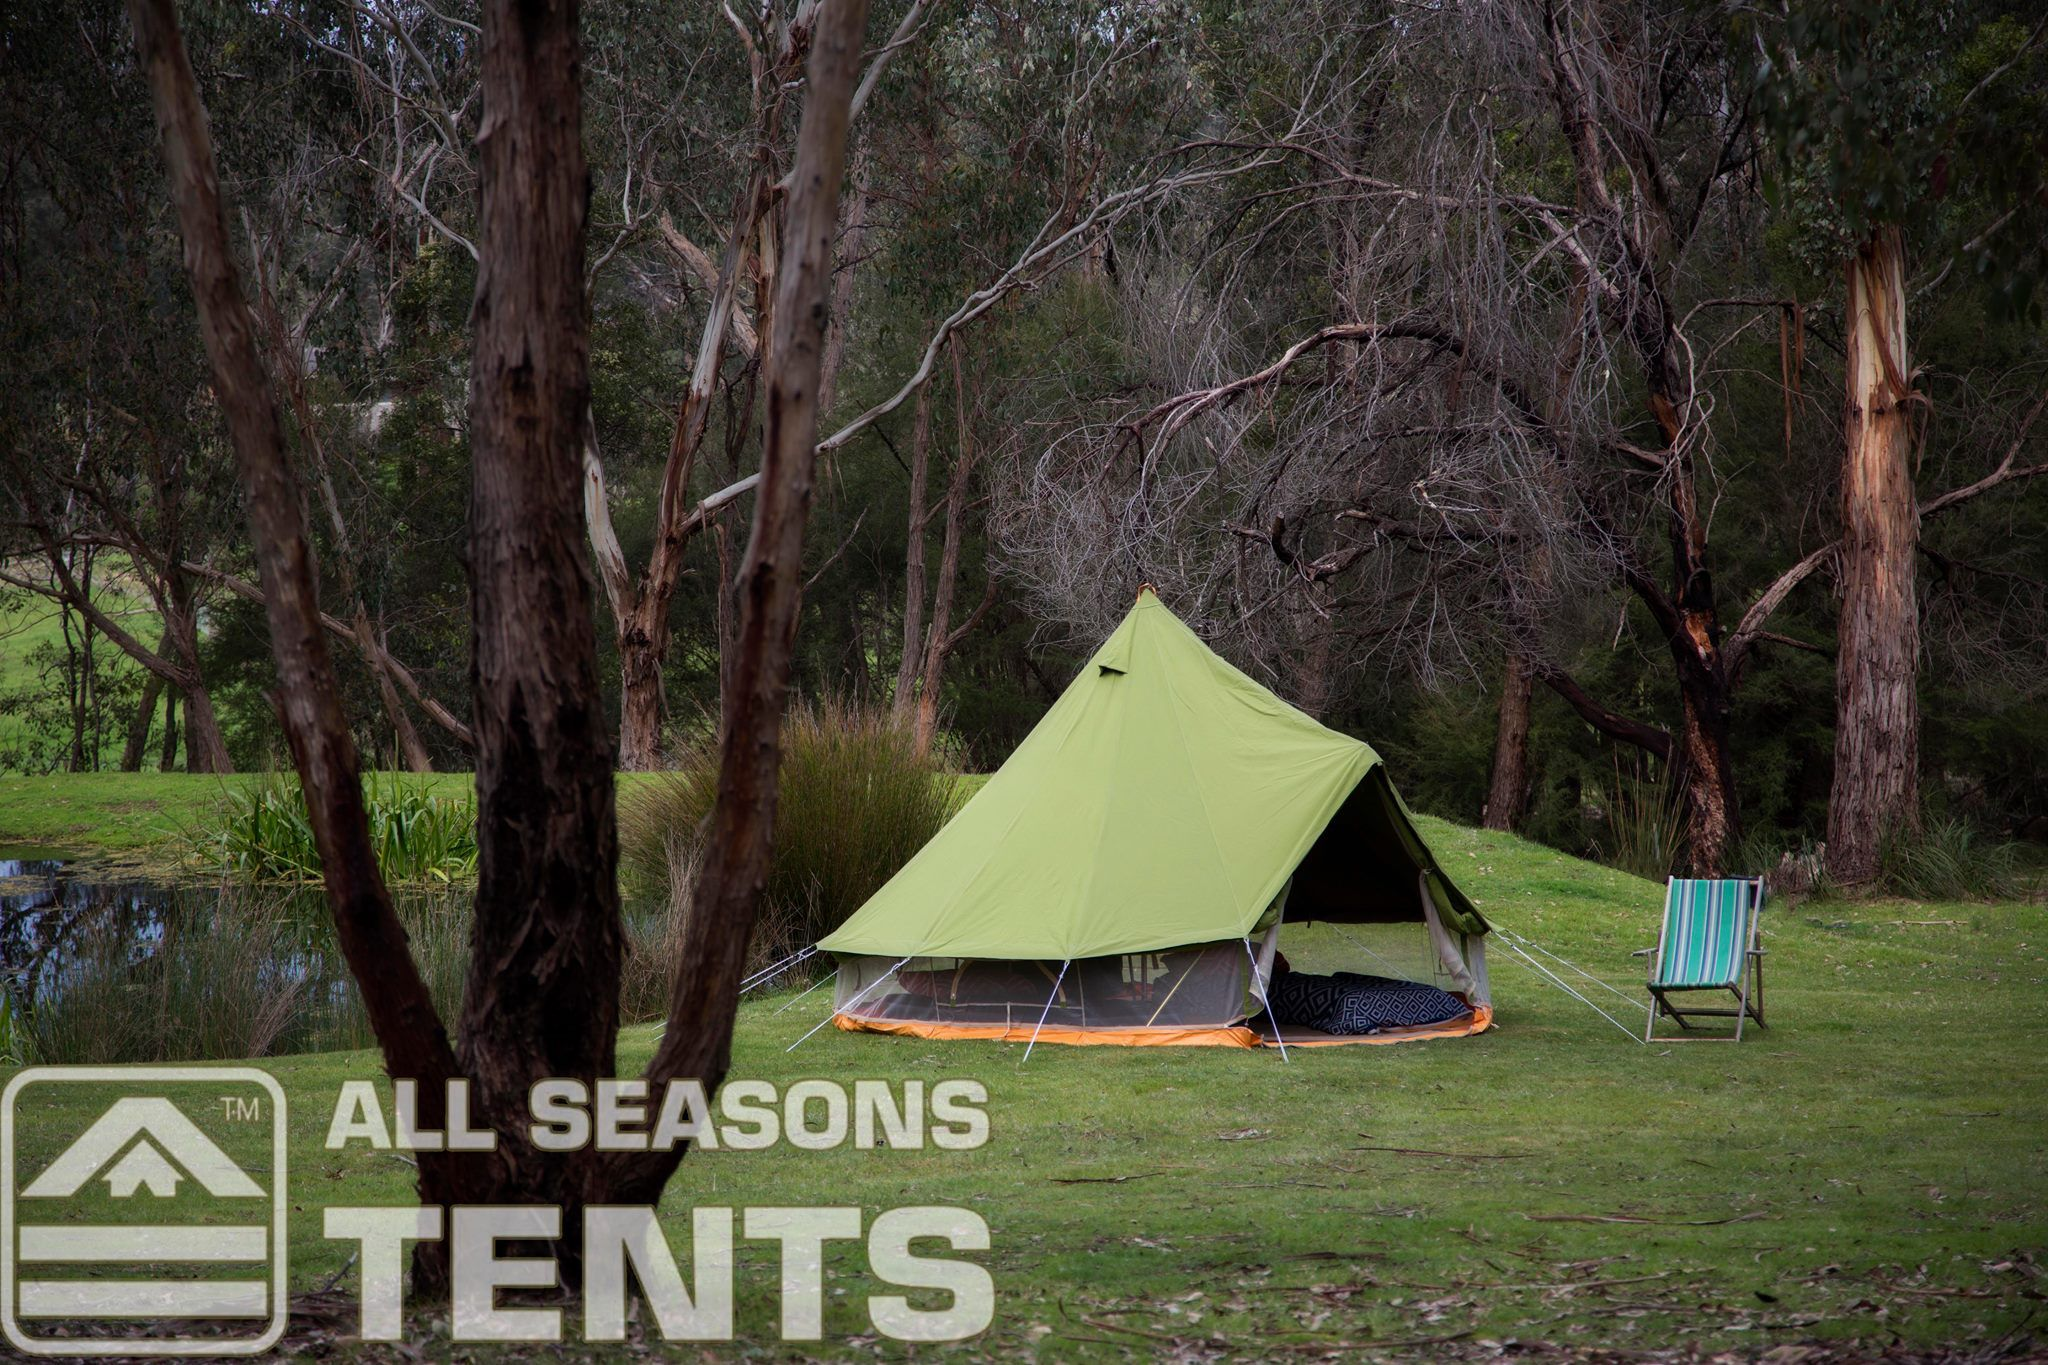 All Seasons Tents Bell Tents - All Seasons Tents - bell tent canvas tent & All Seasons Tents Bell Tents - All Seasons Tents - bell tent ...